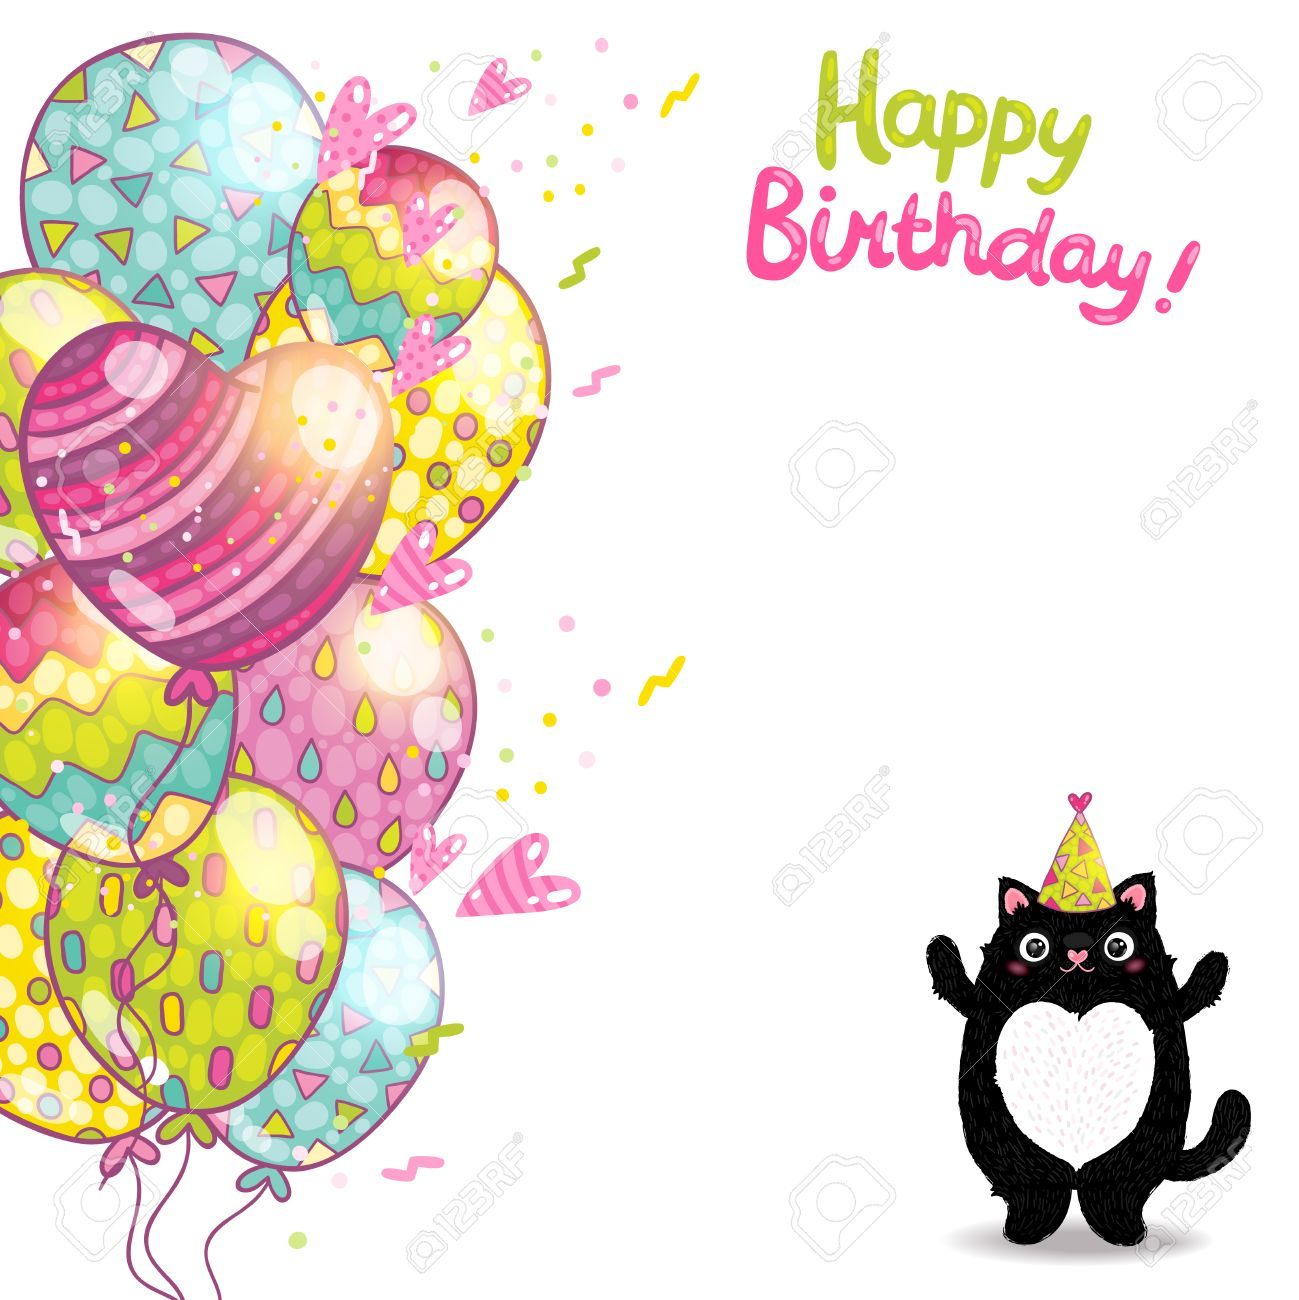 happy birthday card background a cat vector holiday party happy birthday card background a cat vector holiday party template stock vector 29269621